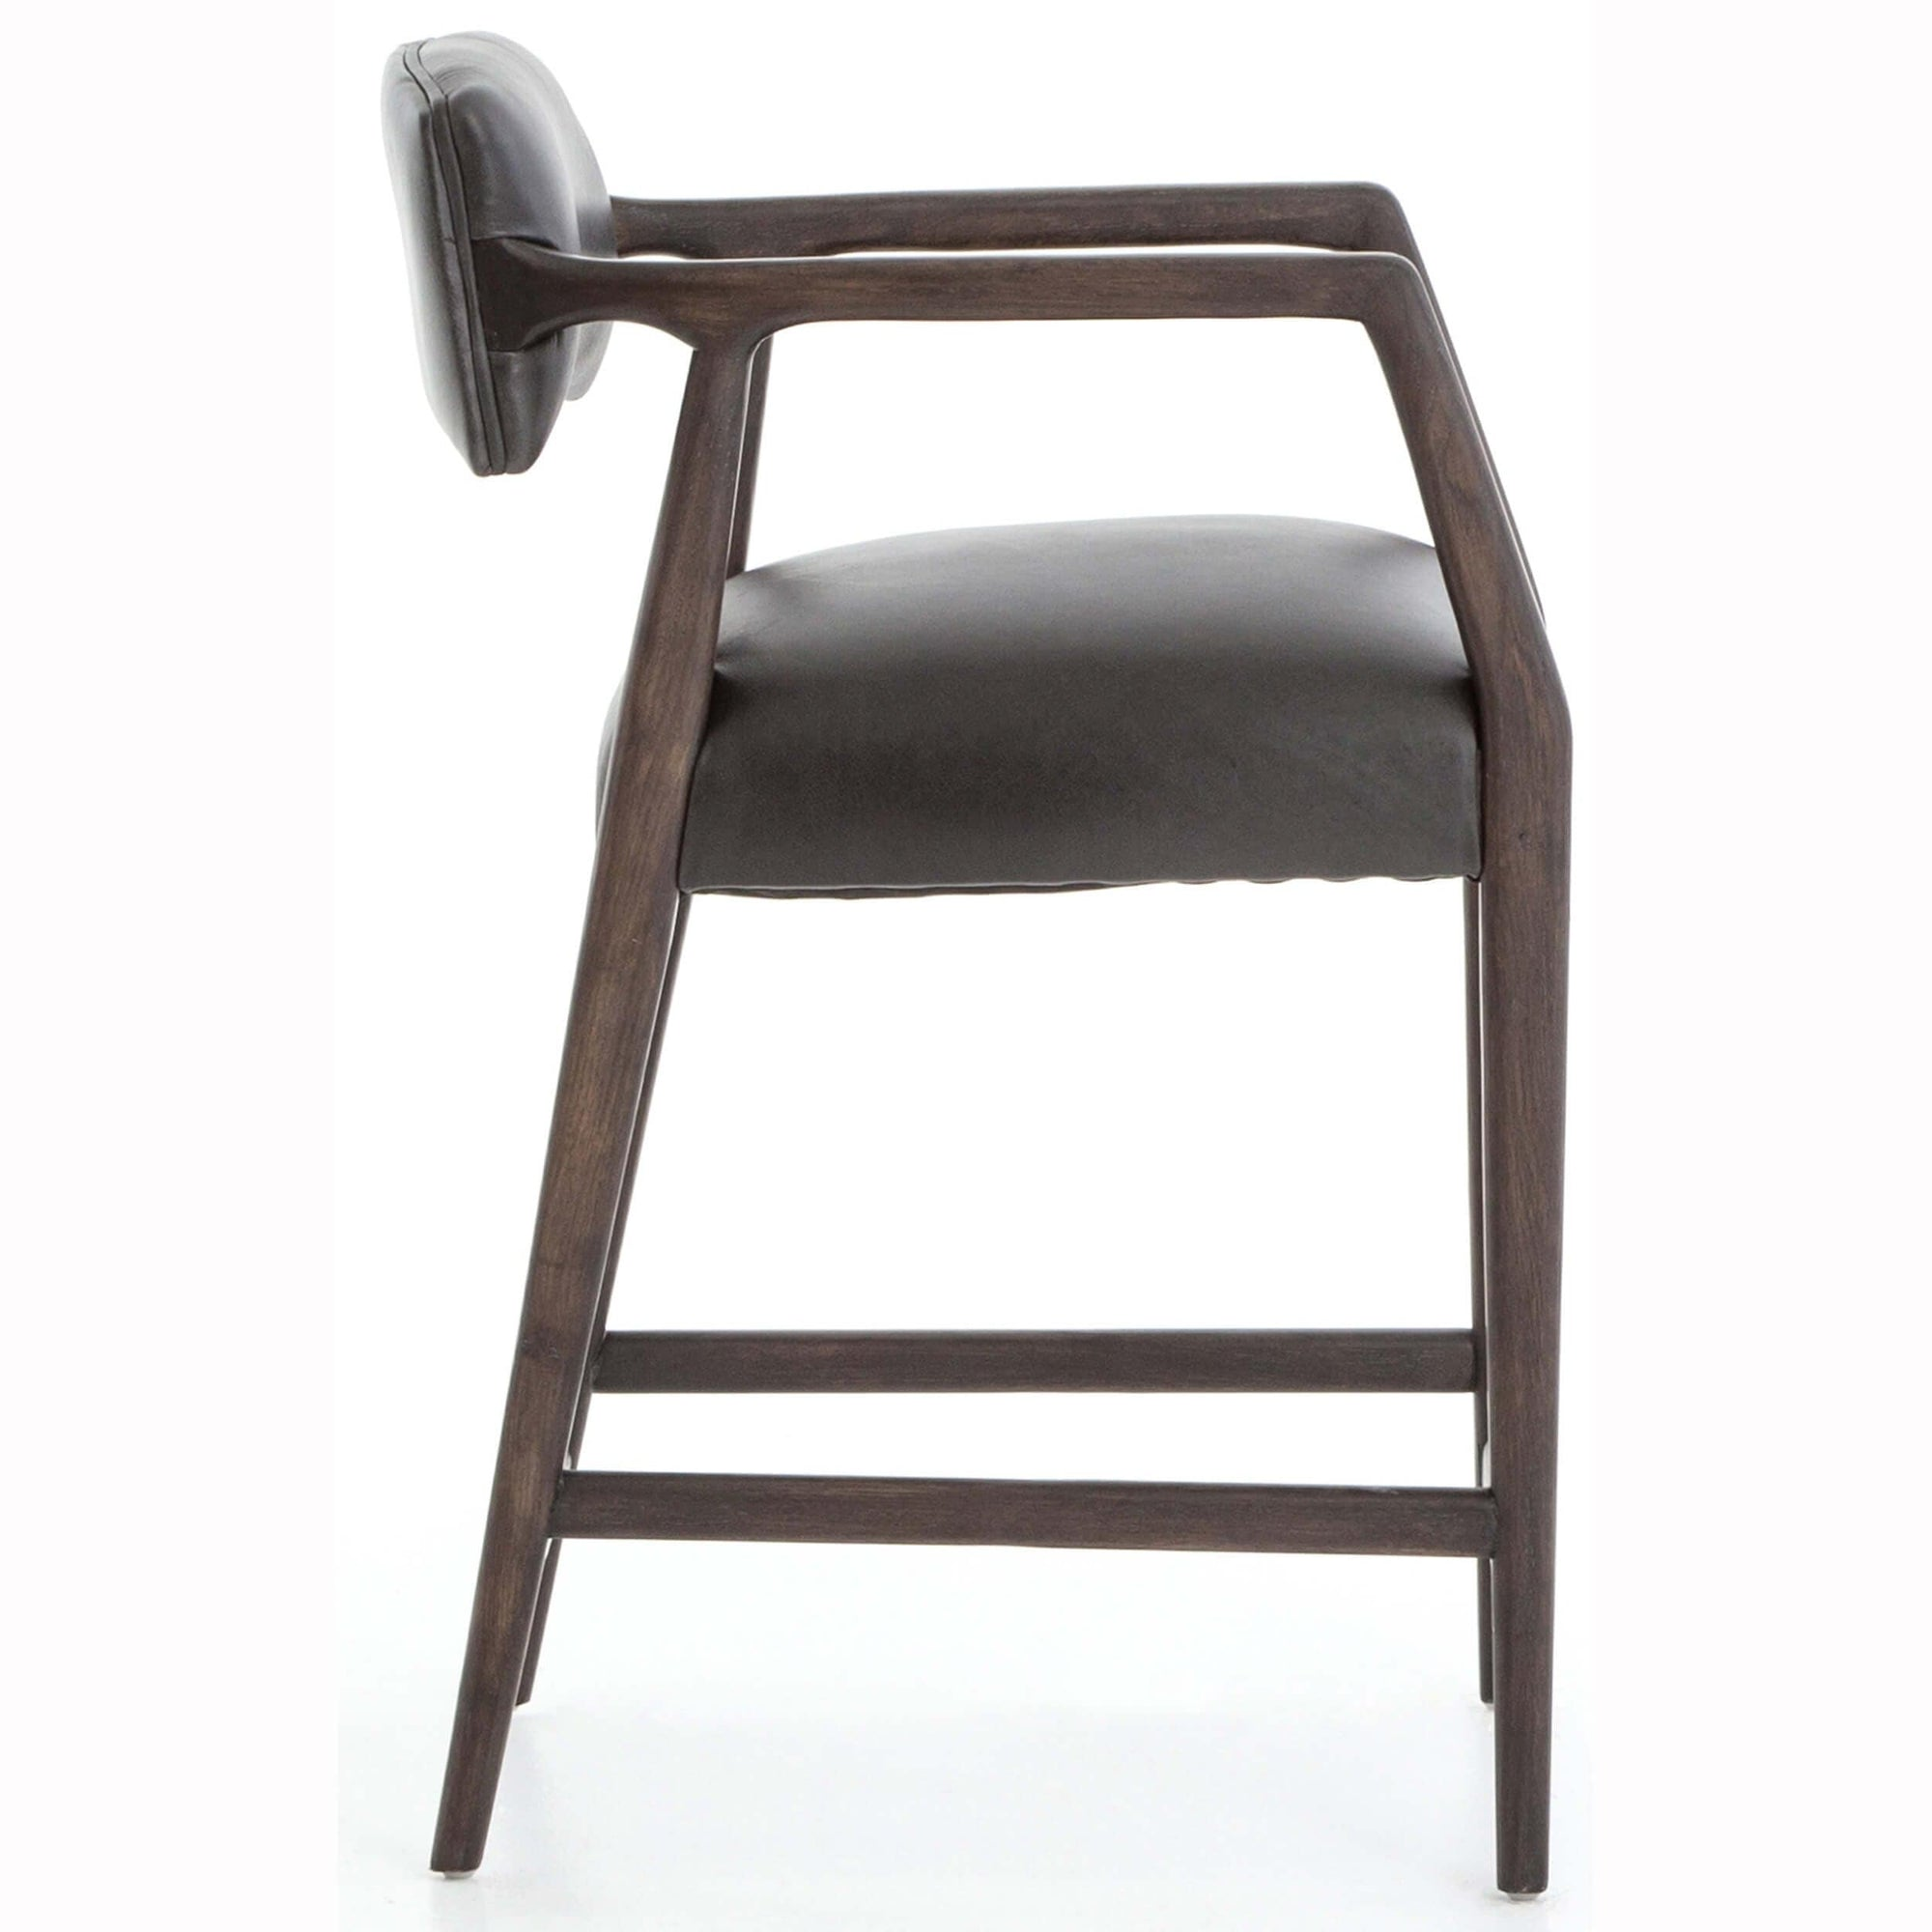 Miraculous Tyler Leather Counter Stool Chaps Ebony High Fashion Home Caraccident5 Cool Chair Designs And Ideas Caraccident5Info